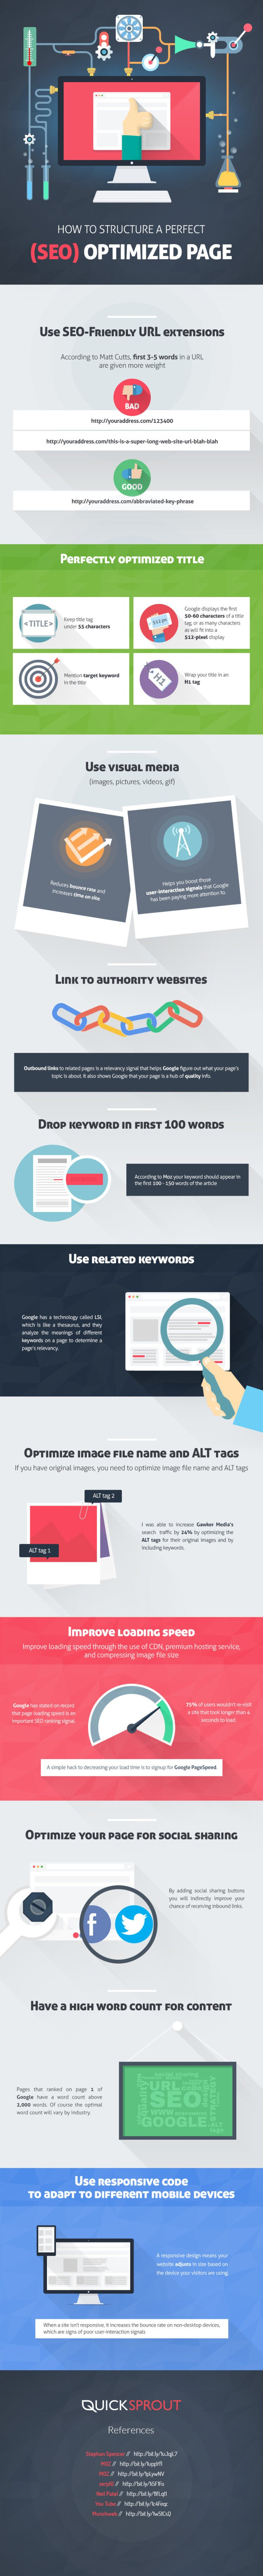 How to Structure a Perfect SEO Optimized Page [Infographic]